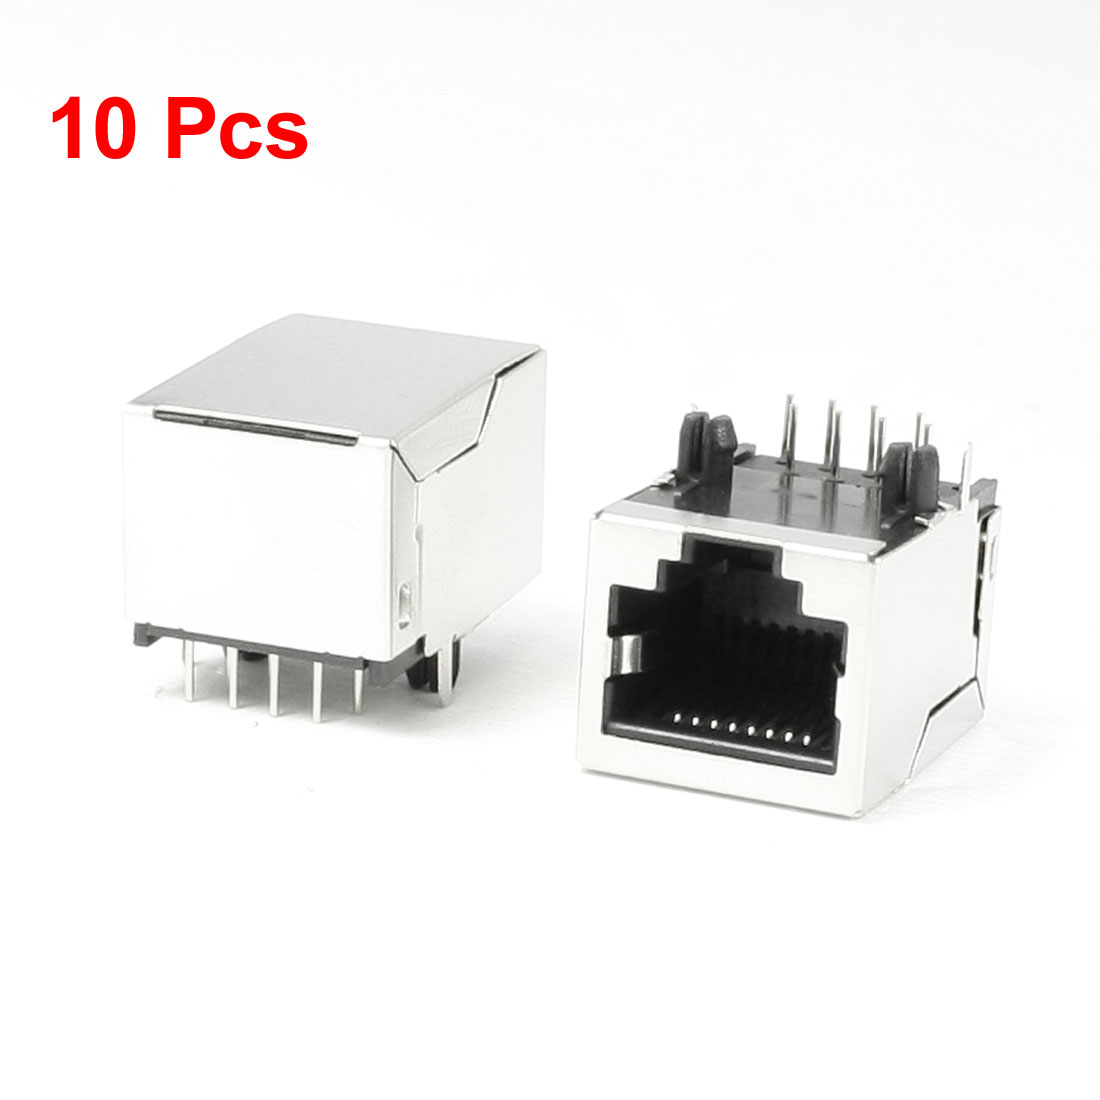 Right Angle Pins 8P8C RJ45 Modular Jack Female Network Connector 10Pcs